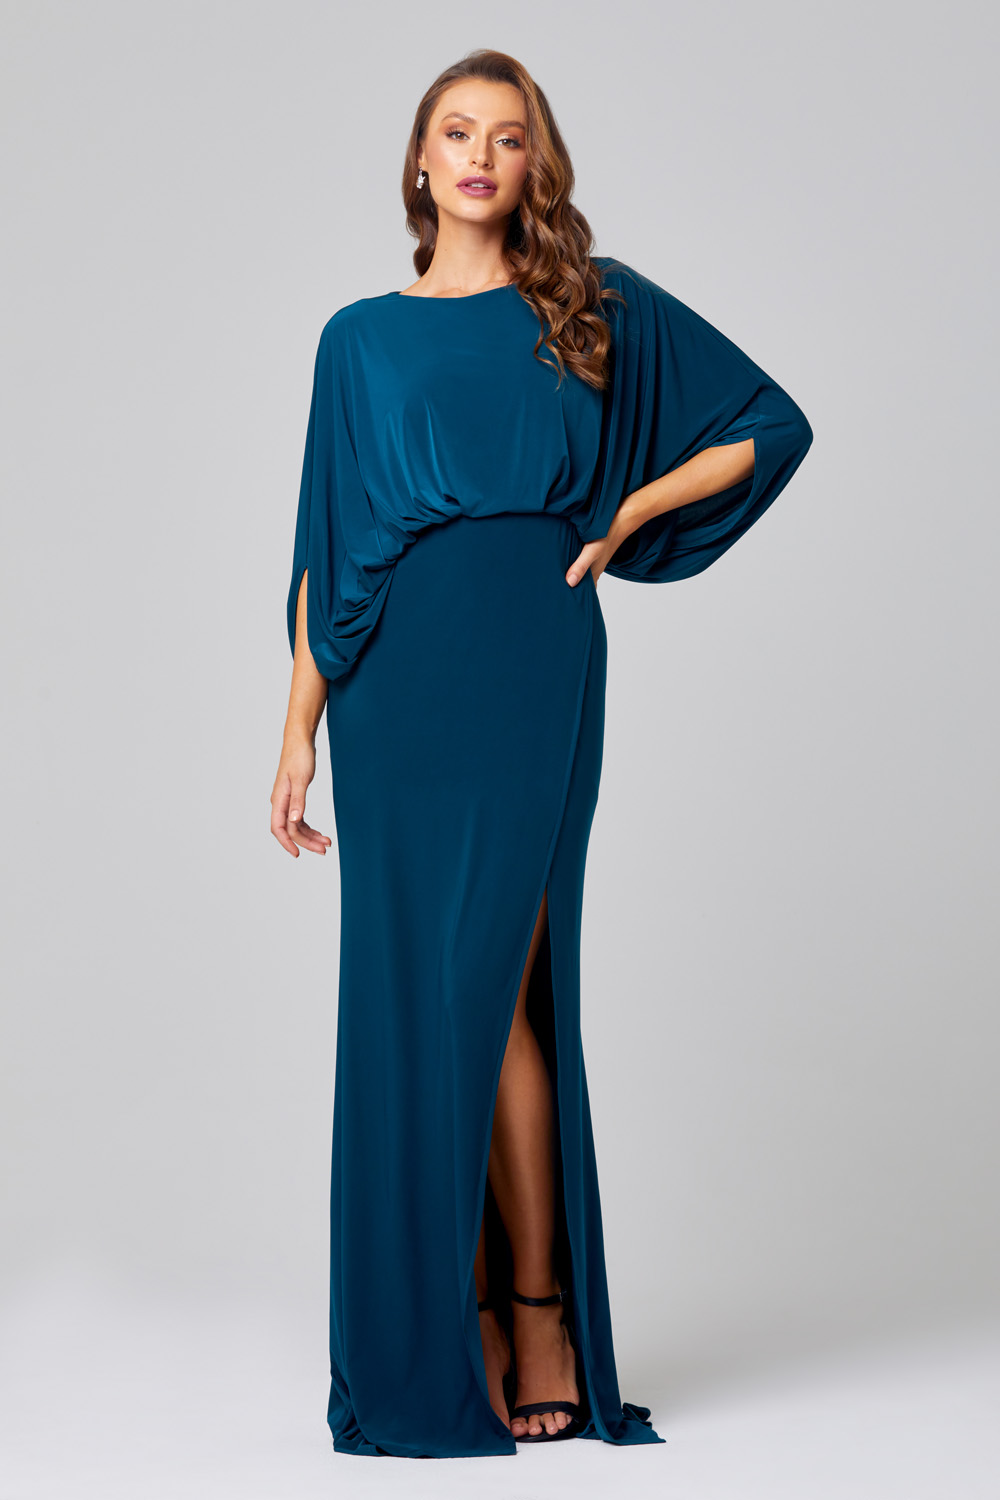 Cleo Cape Sleeve Bridesmaid Dress – TO845